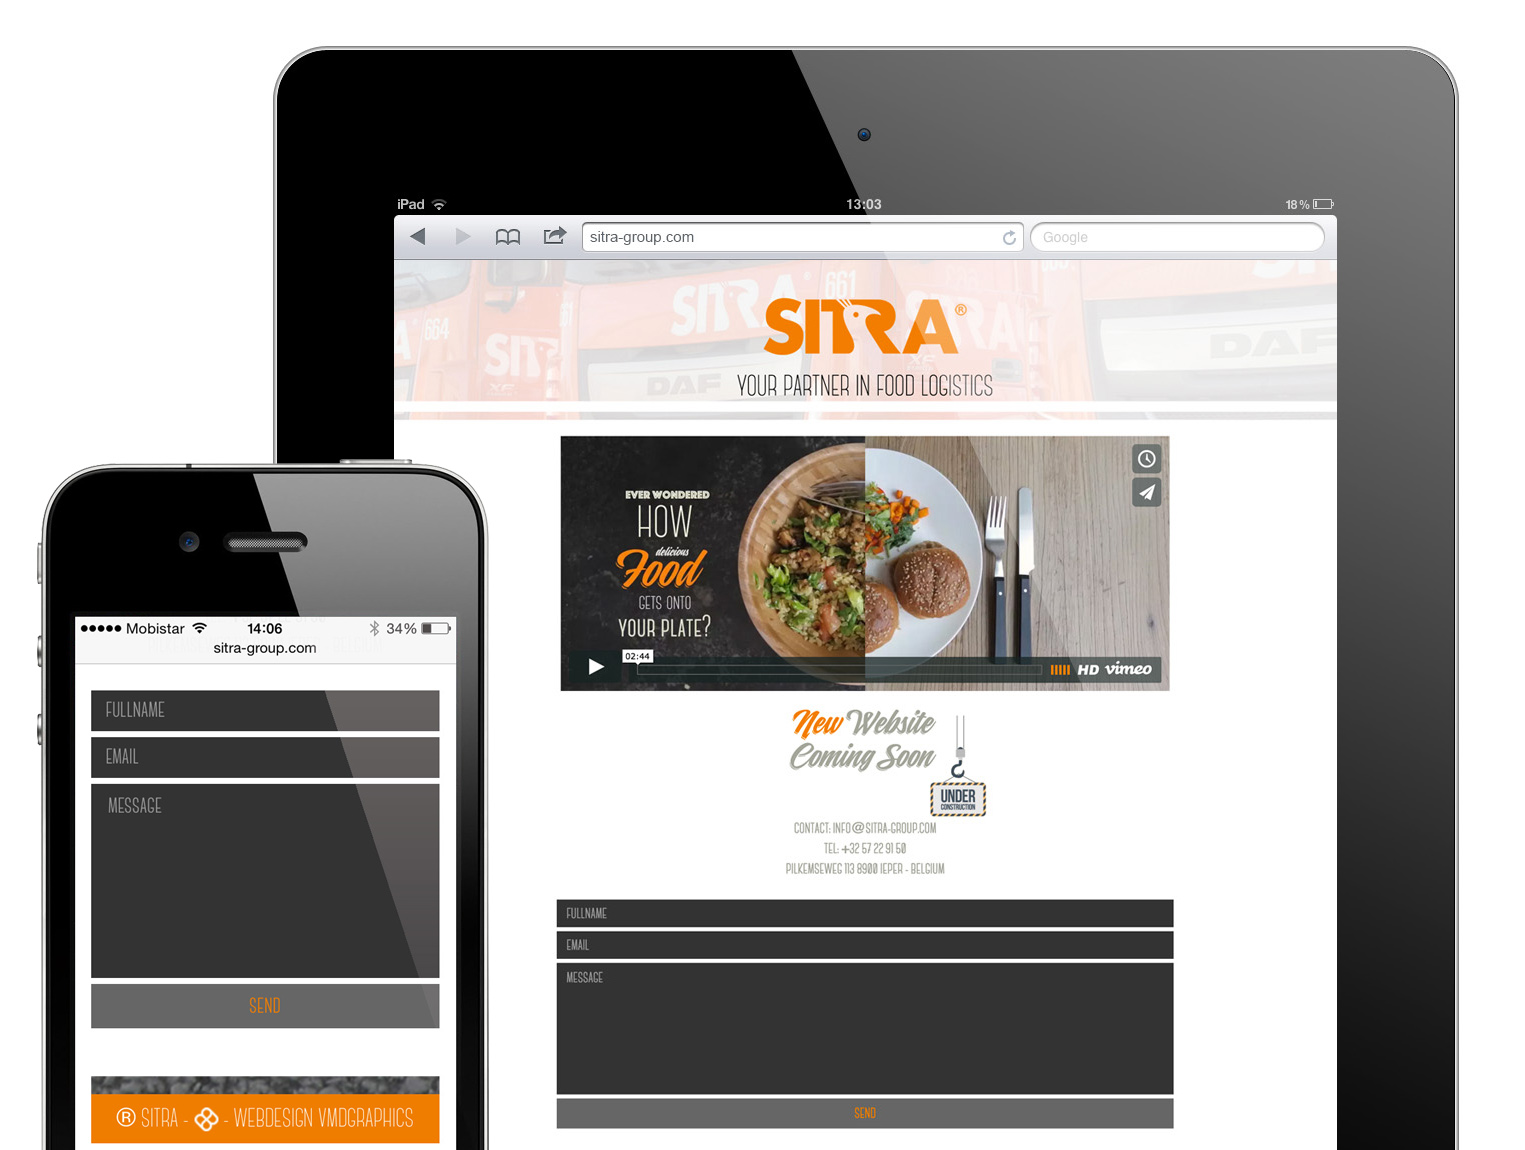 Sitra Group: New Website Coming